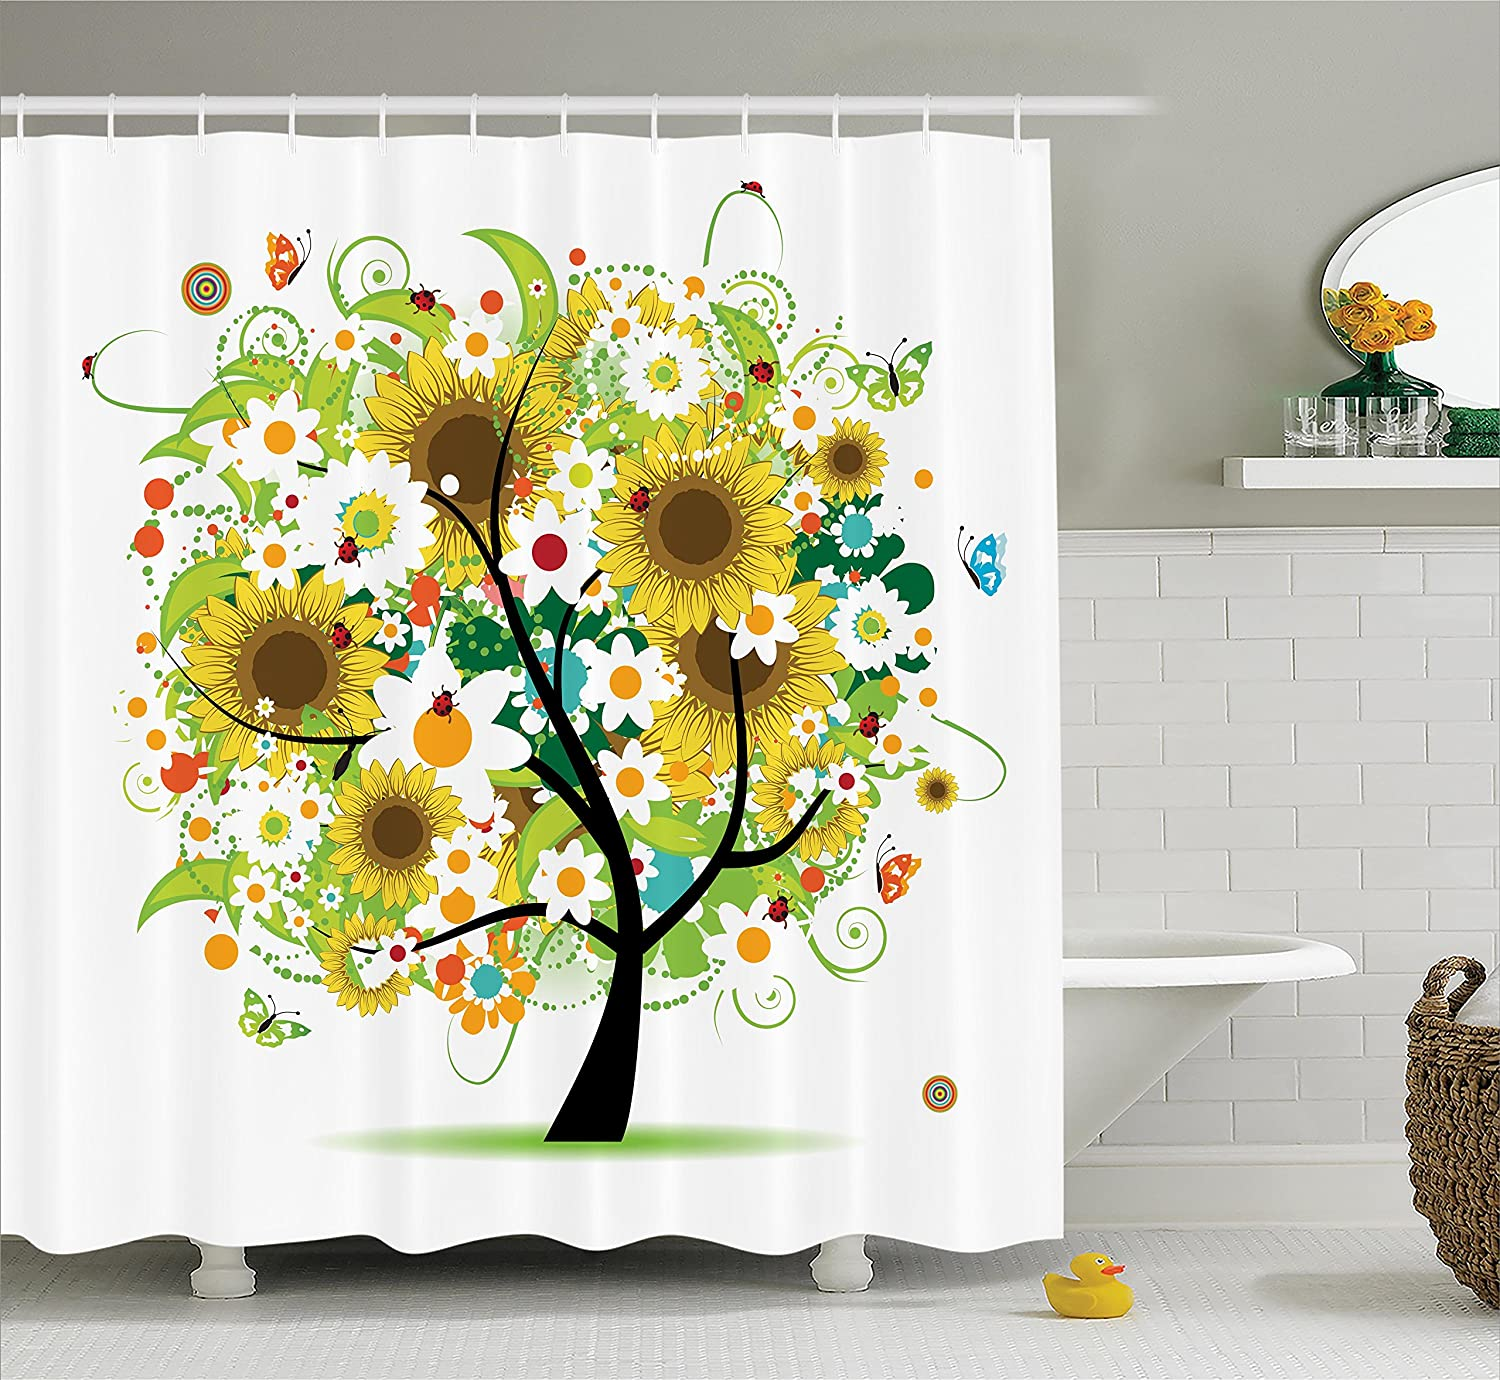 Attirant ... Ambesonne Sunflower Decor Collection, Floral Tree With Daisies  Sunflowers Butterflies Ladybugs Insect Swirl Spring Fantasy ...